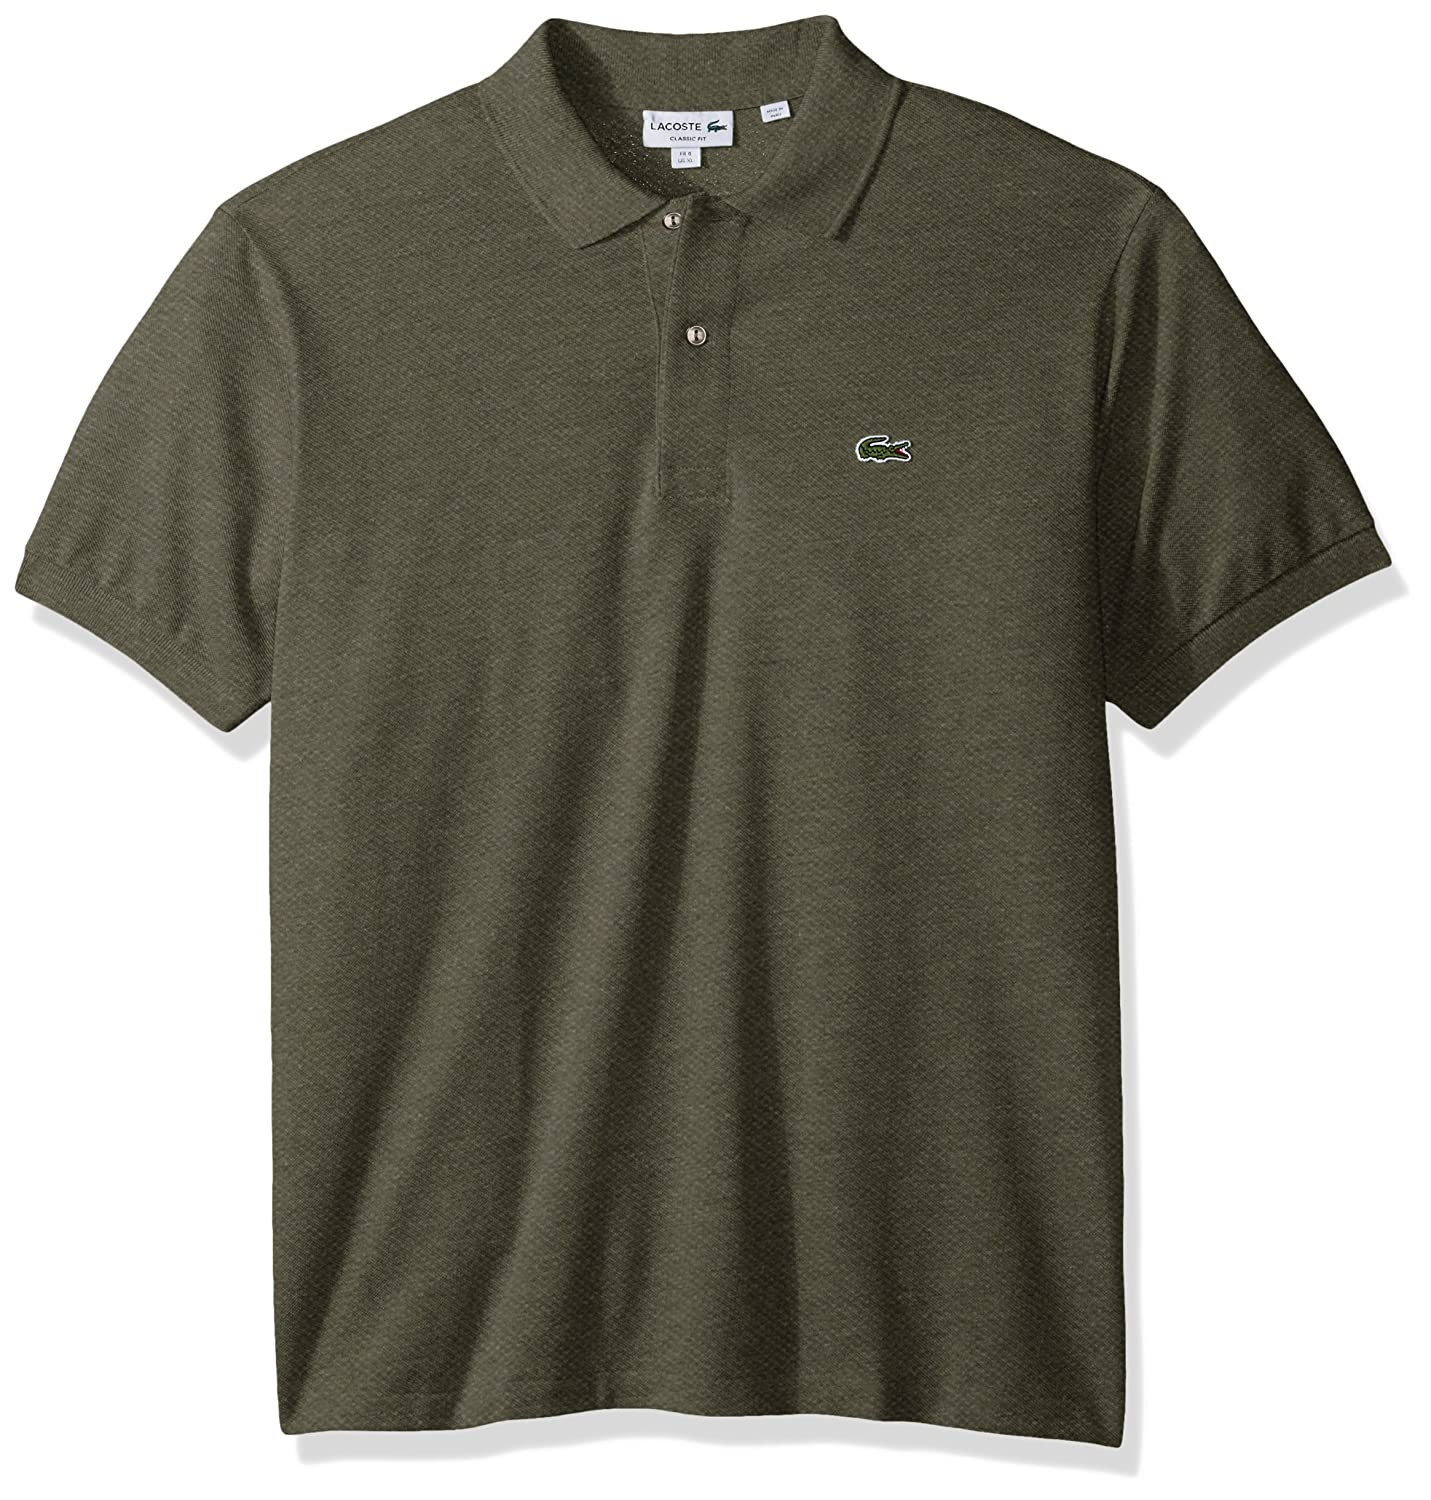 e8324b3a2 Lacoste Men s Short Sleeve Classic Fit Chine Pique Polo Shirt at Amazon  Men s Clothing store